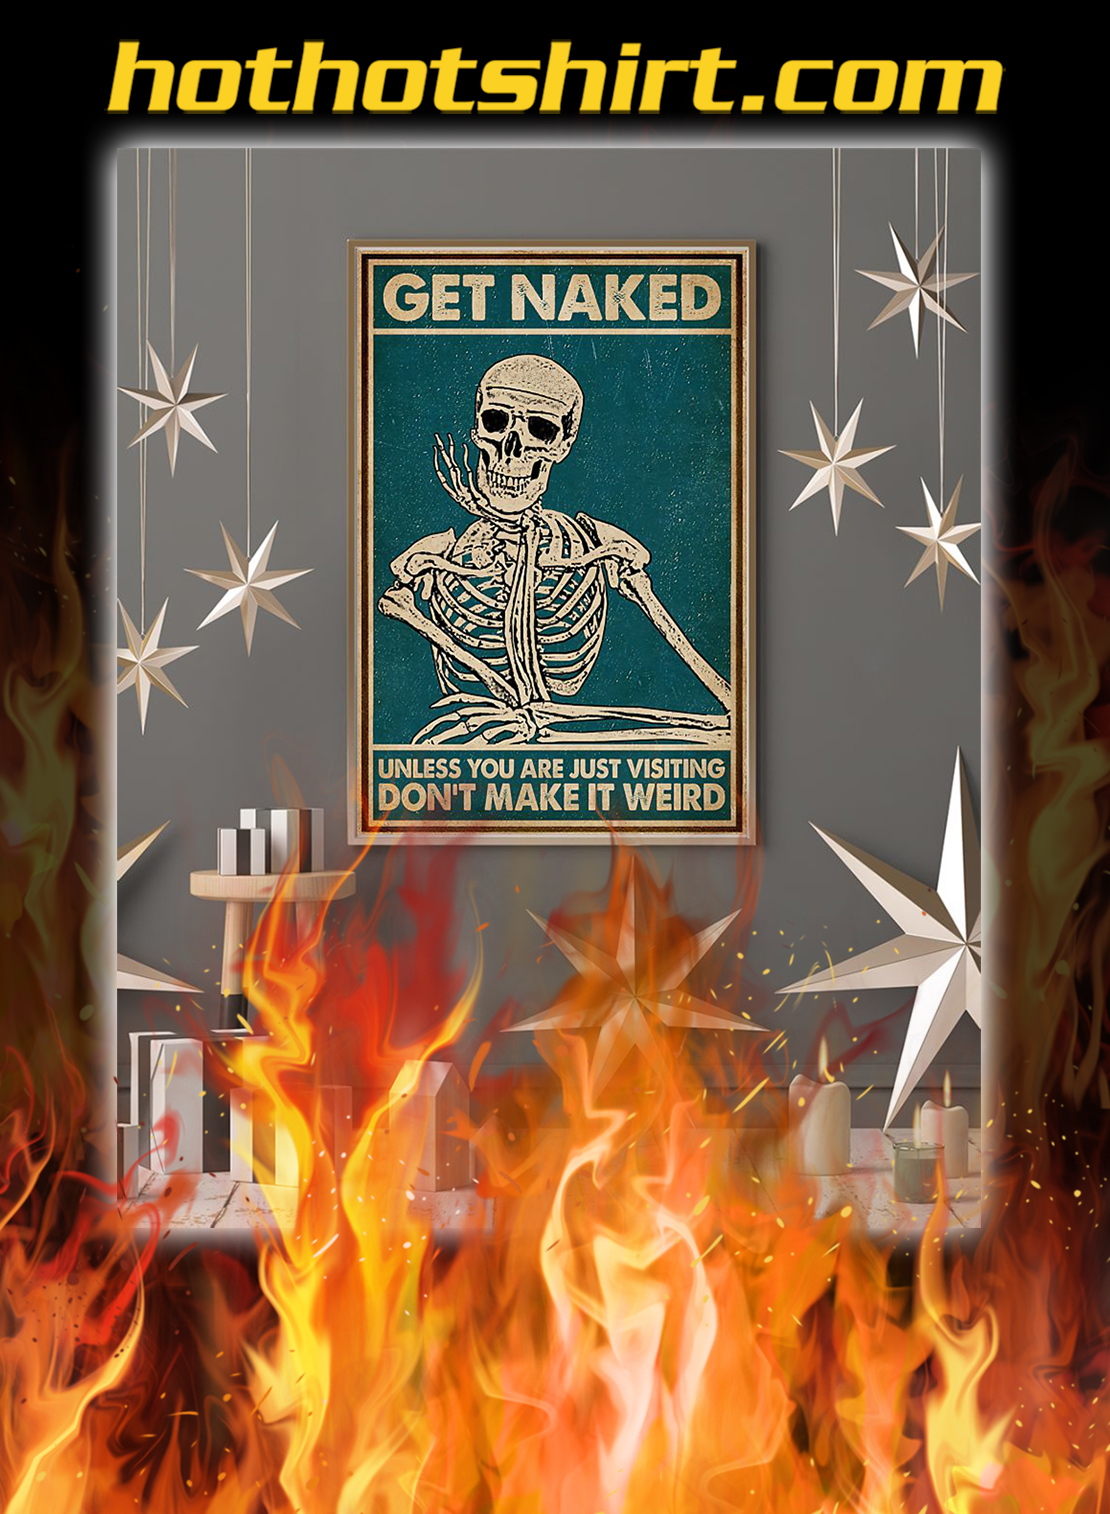 Get naked unless you are just visiting don't make it weird poster- A3